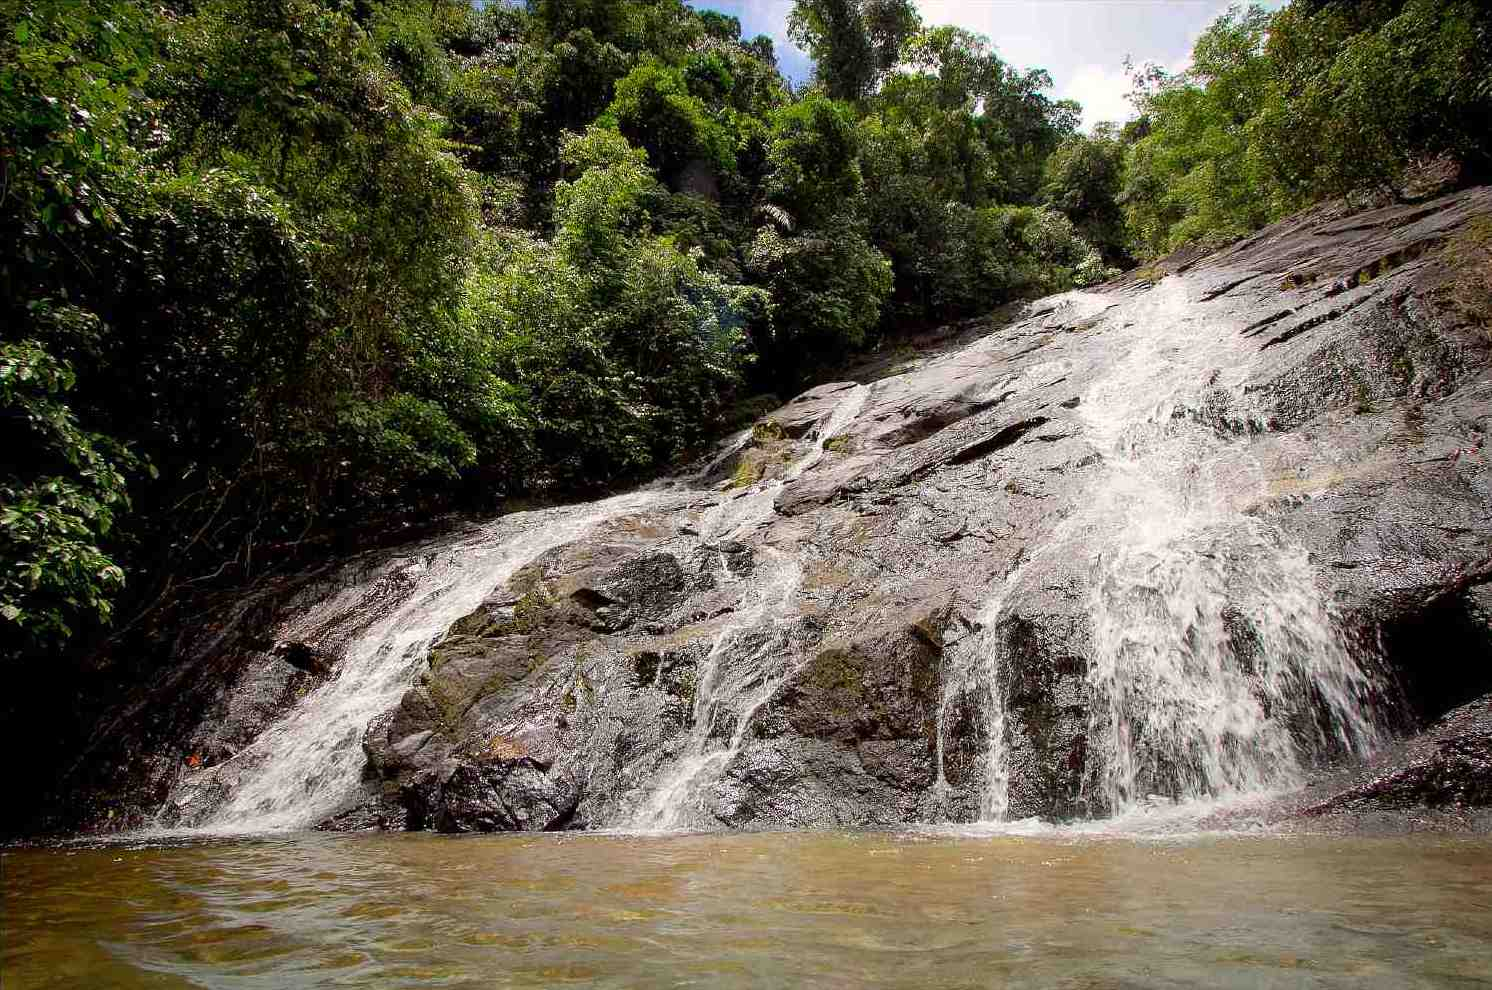 Swimming at Ton Prai waterfall in National Park Khao Lak